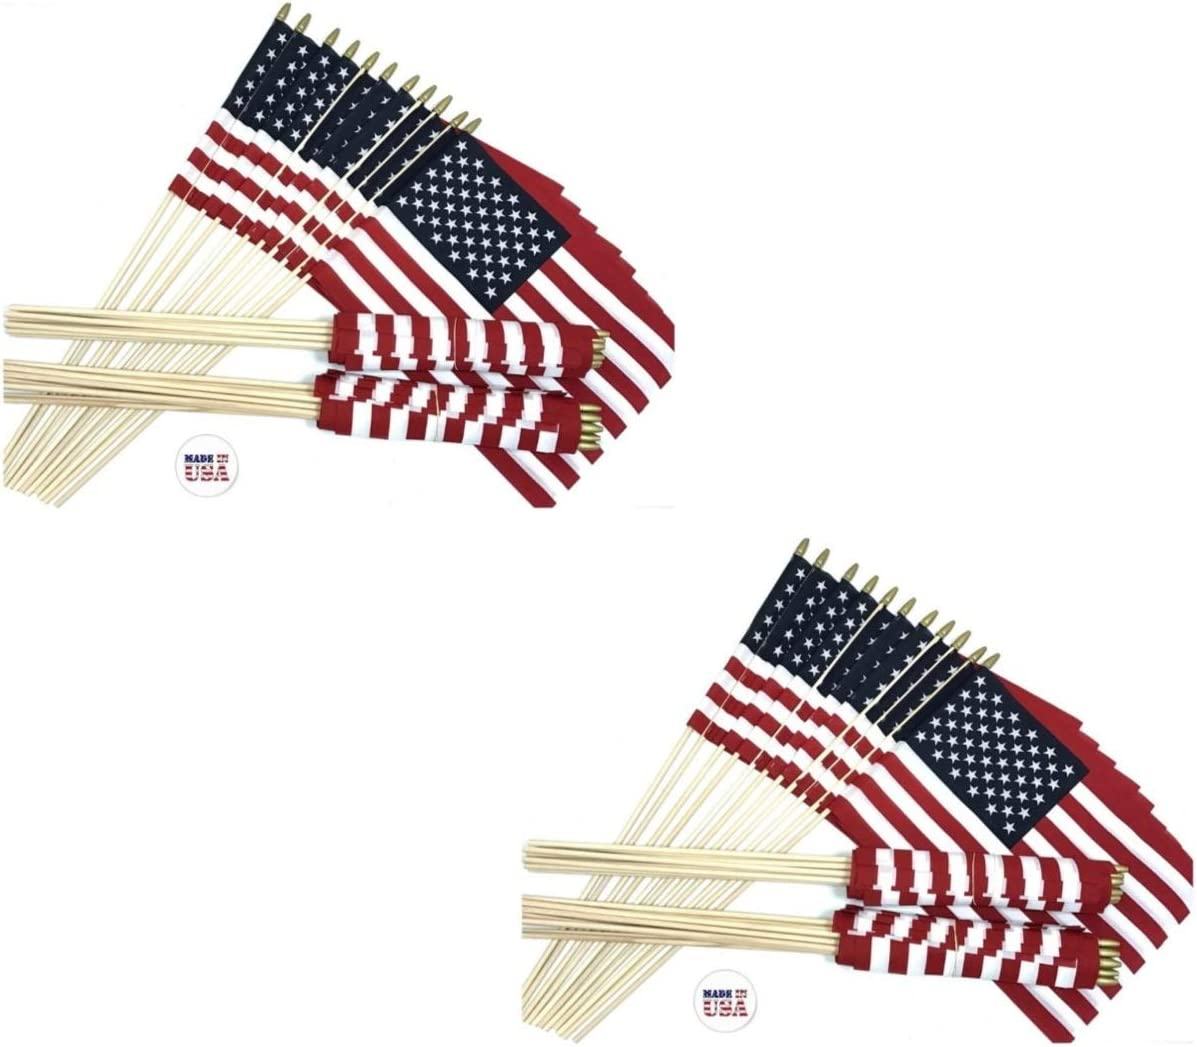 12x18 US Stick School Classroom Flags Made in The USA Beautiful Colors, American Made 12x18 Flag is Mounted on a 30 Wood Staff 12 Dozen